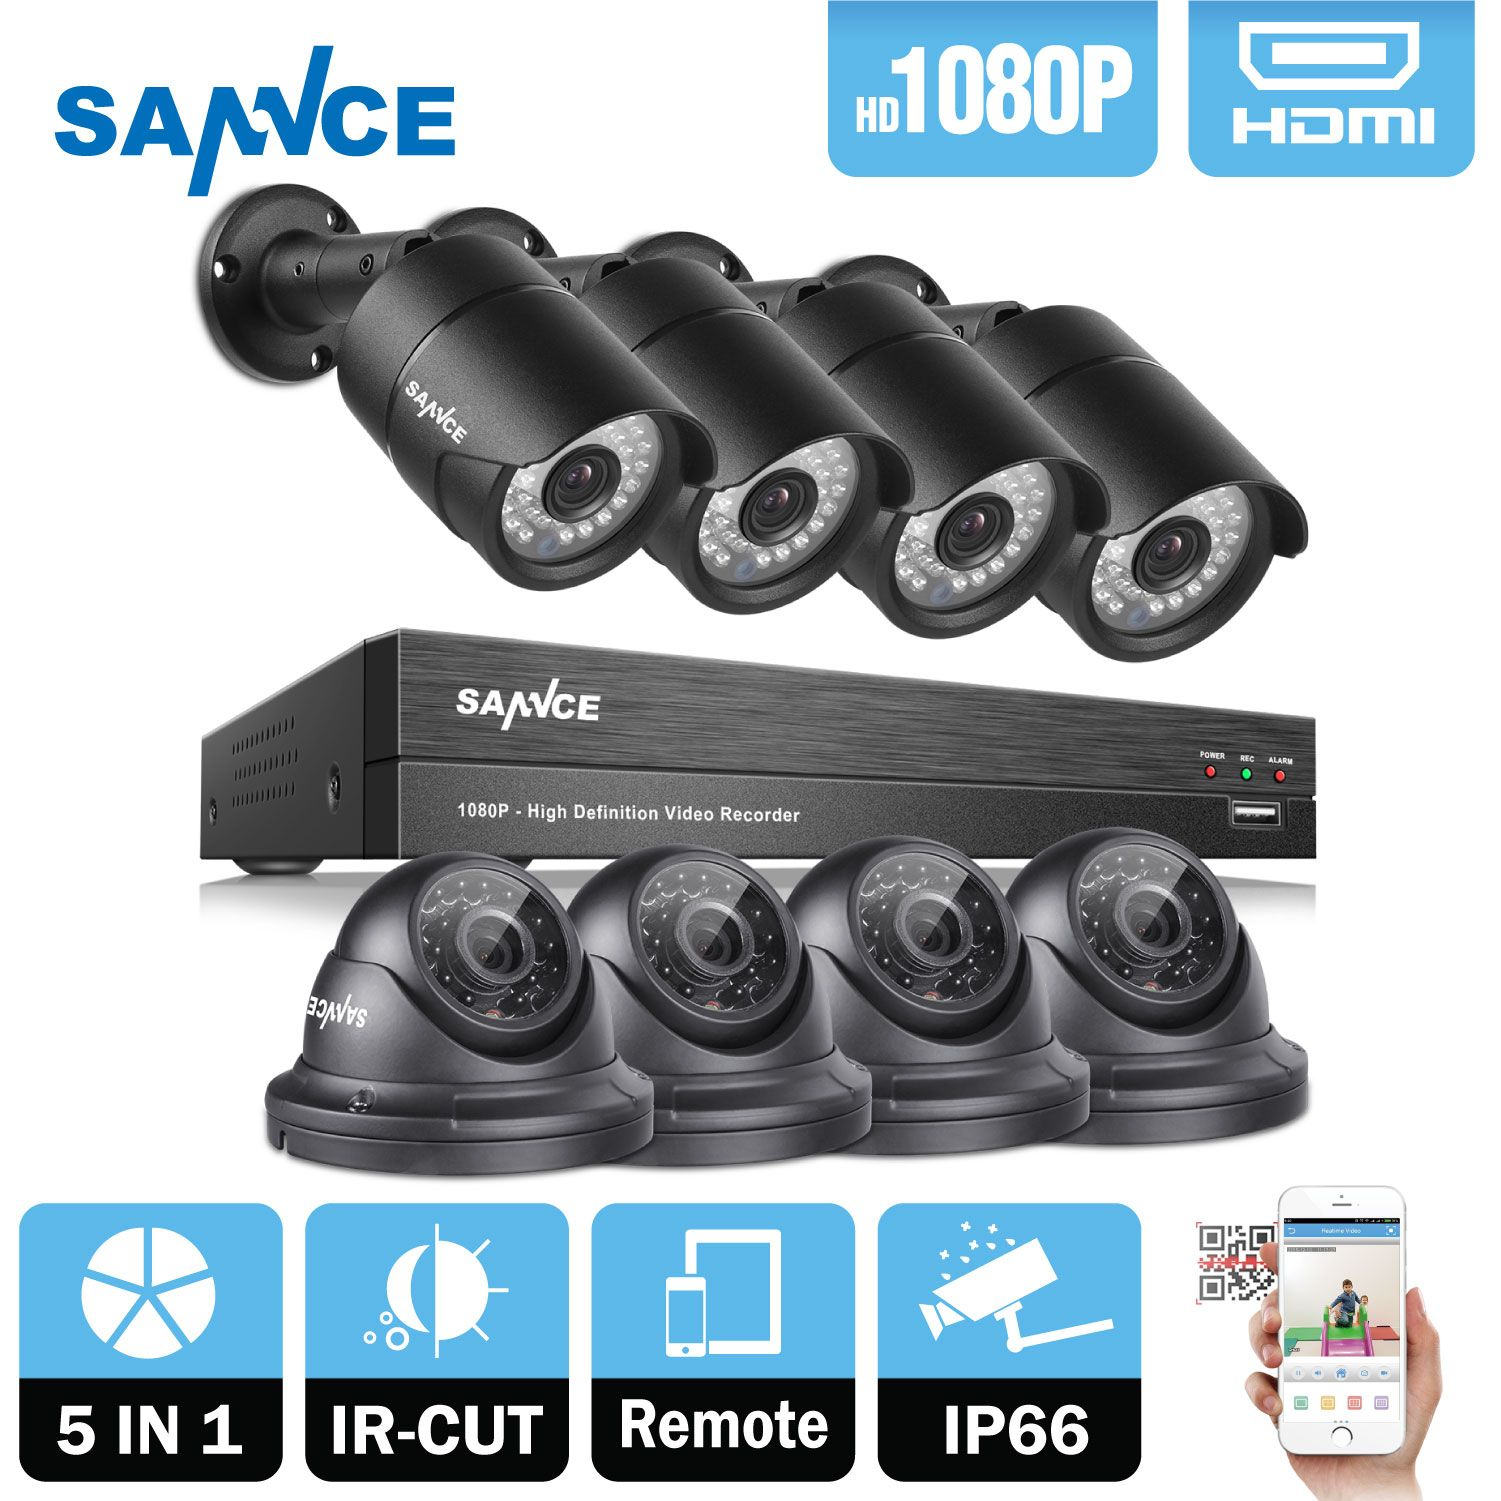 SANNCE 8CH 1080 P 2MP CCTV DVR Recorder 4 STÜCKE 1080 P HD 1920*1080 In/Outdoor-überwachungs Kugel Dome Kamera System & 1 TB HDD Onvif